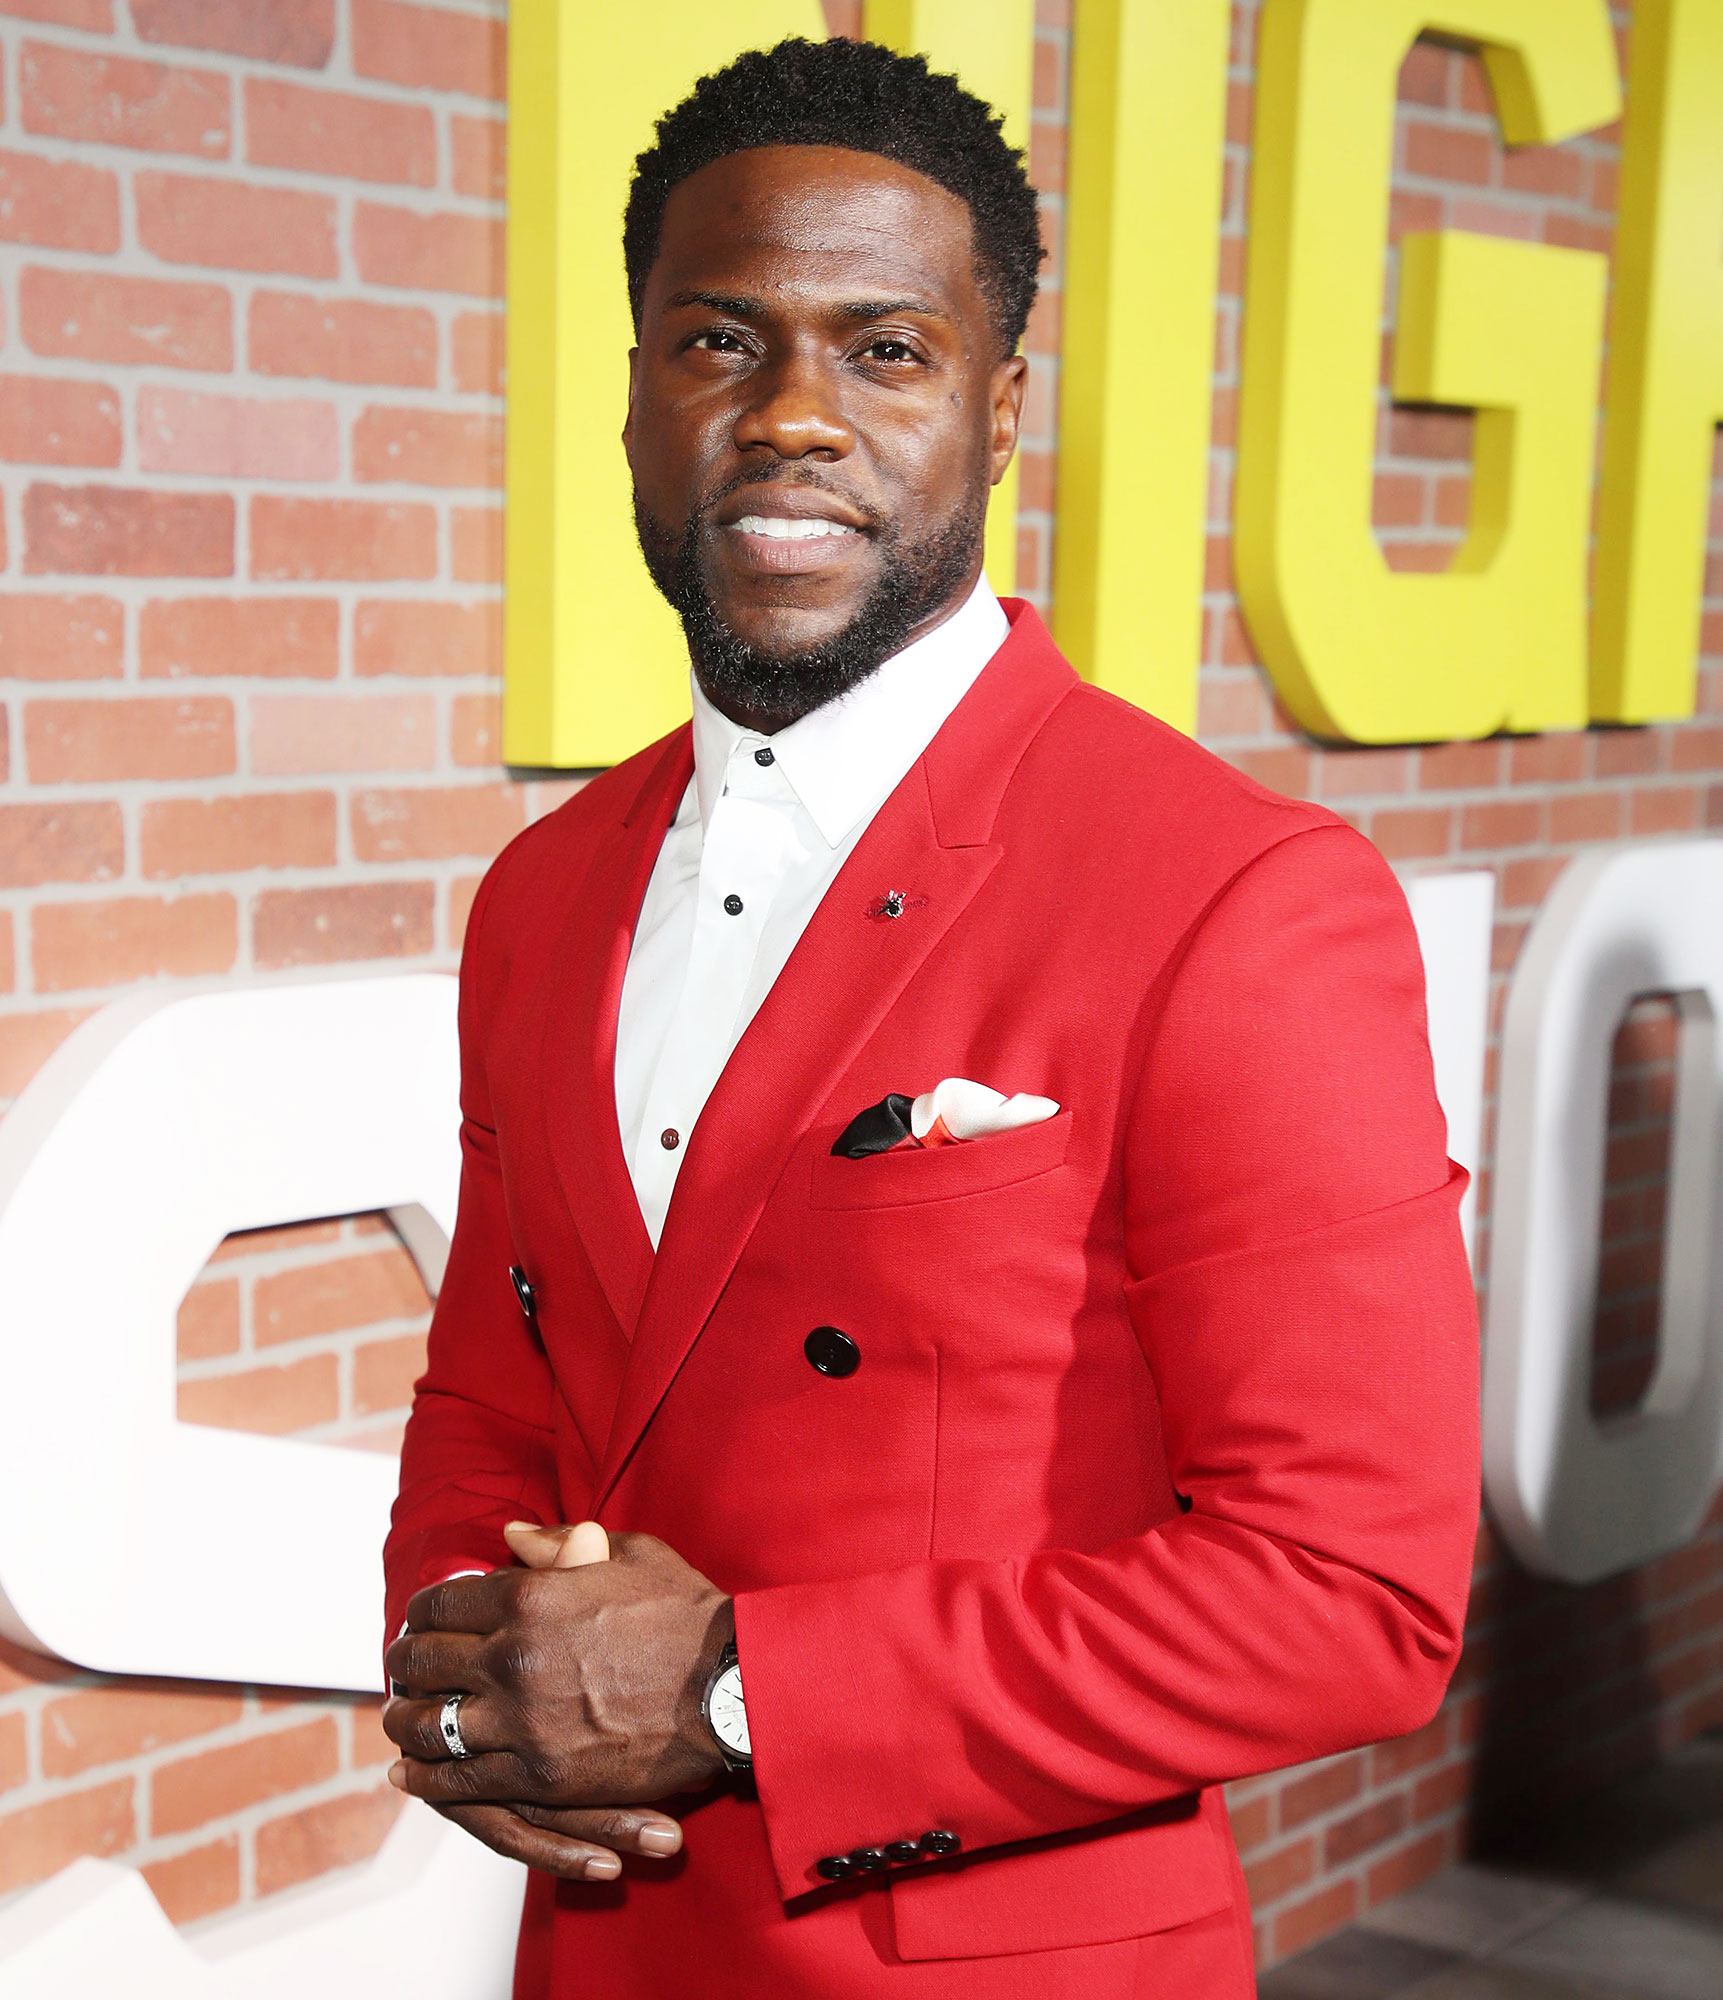 Kevin Hart at Night School Premiere in a Red Jacket Is Back at Work After Car Accident But Nowhere Near Full Recovery